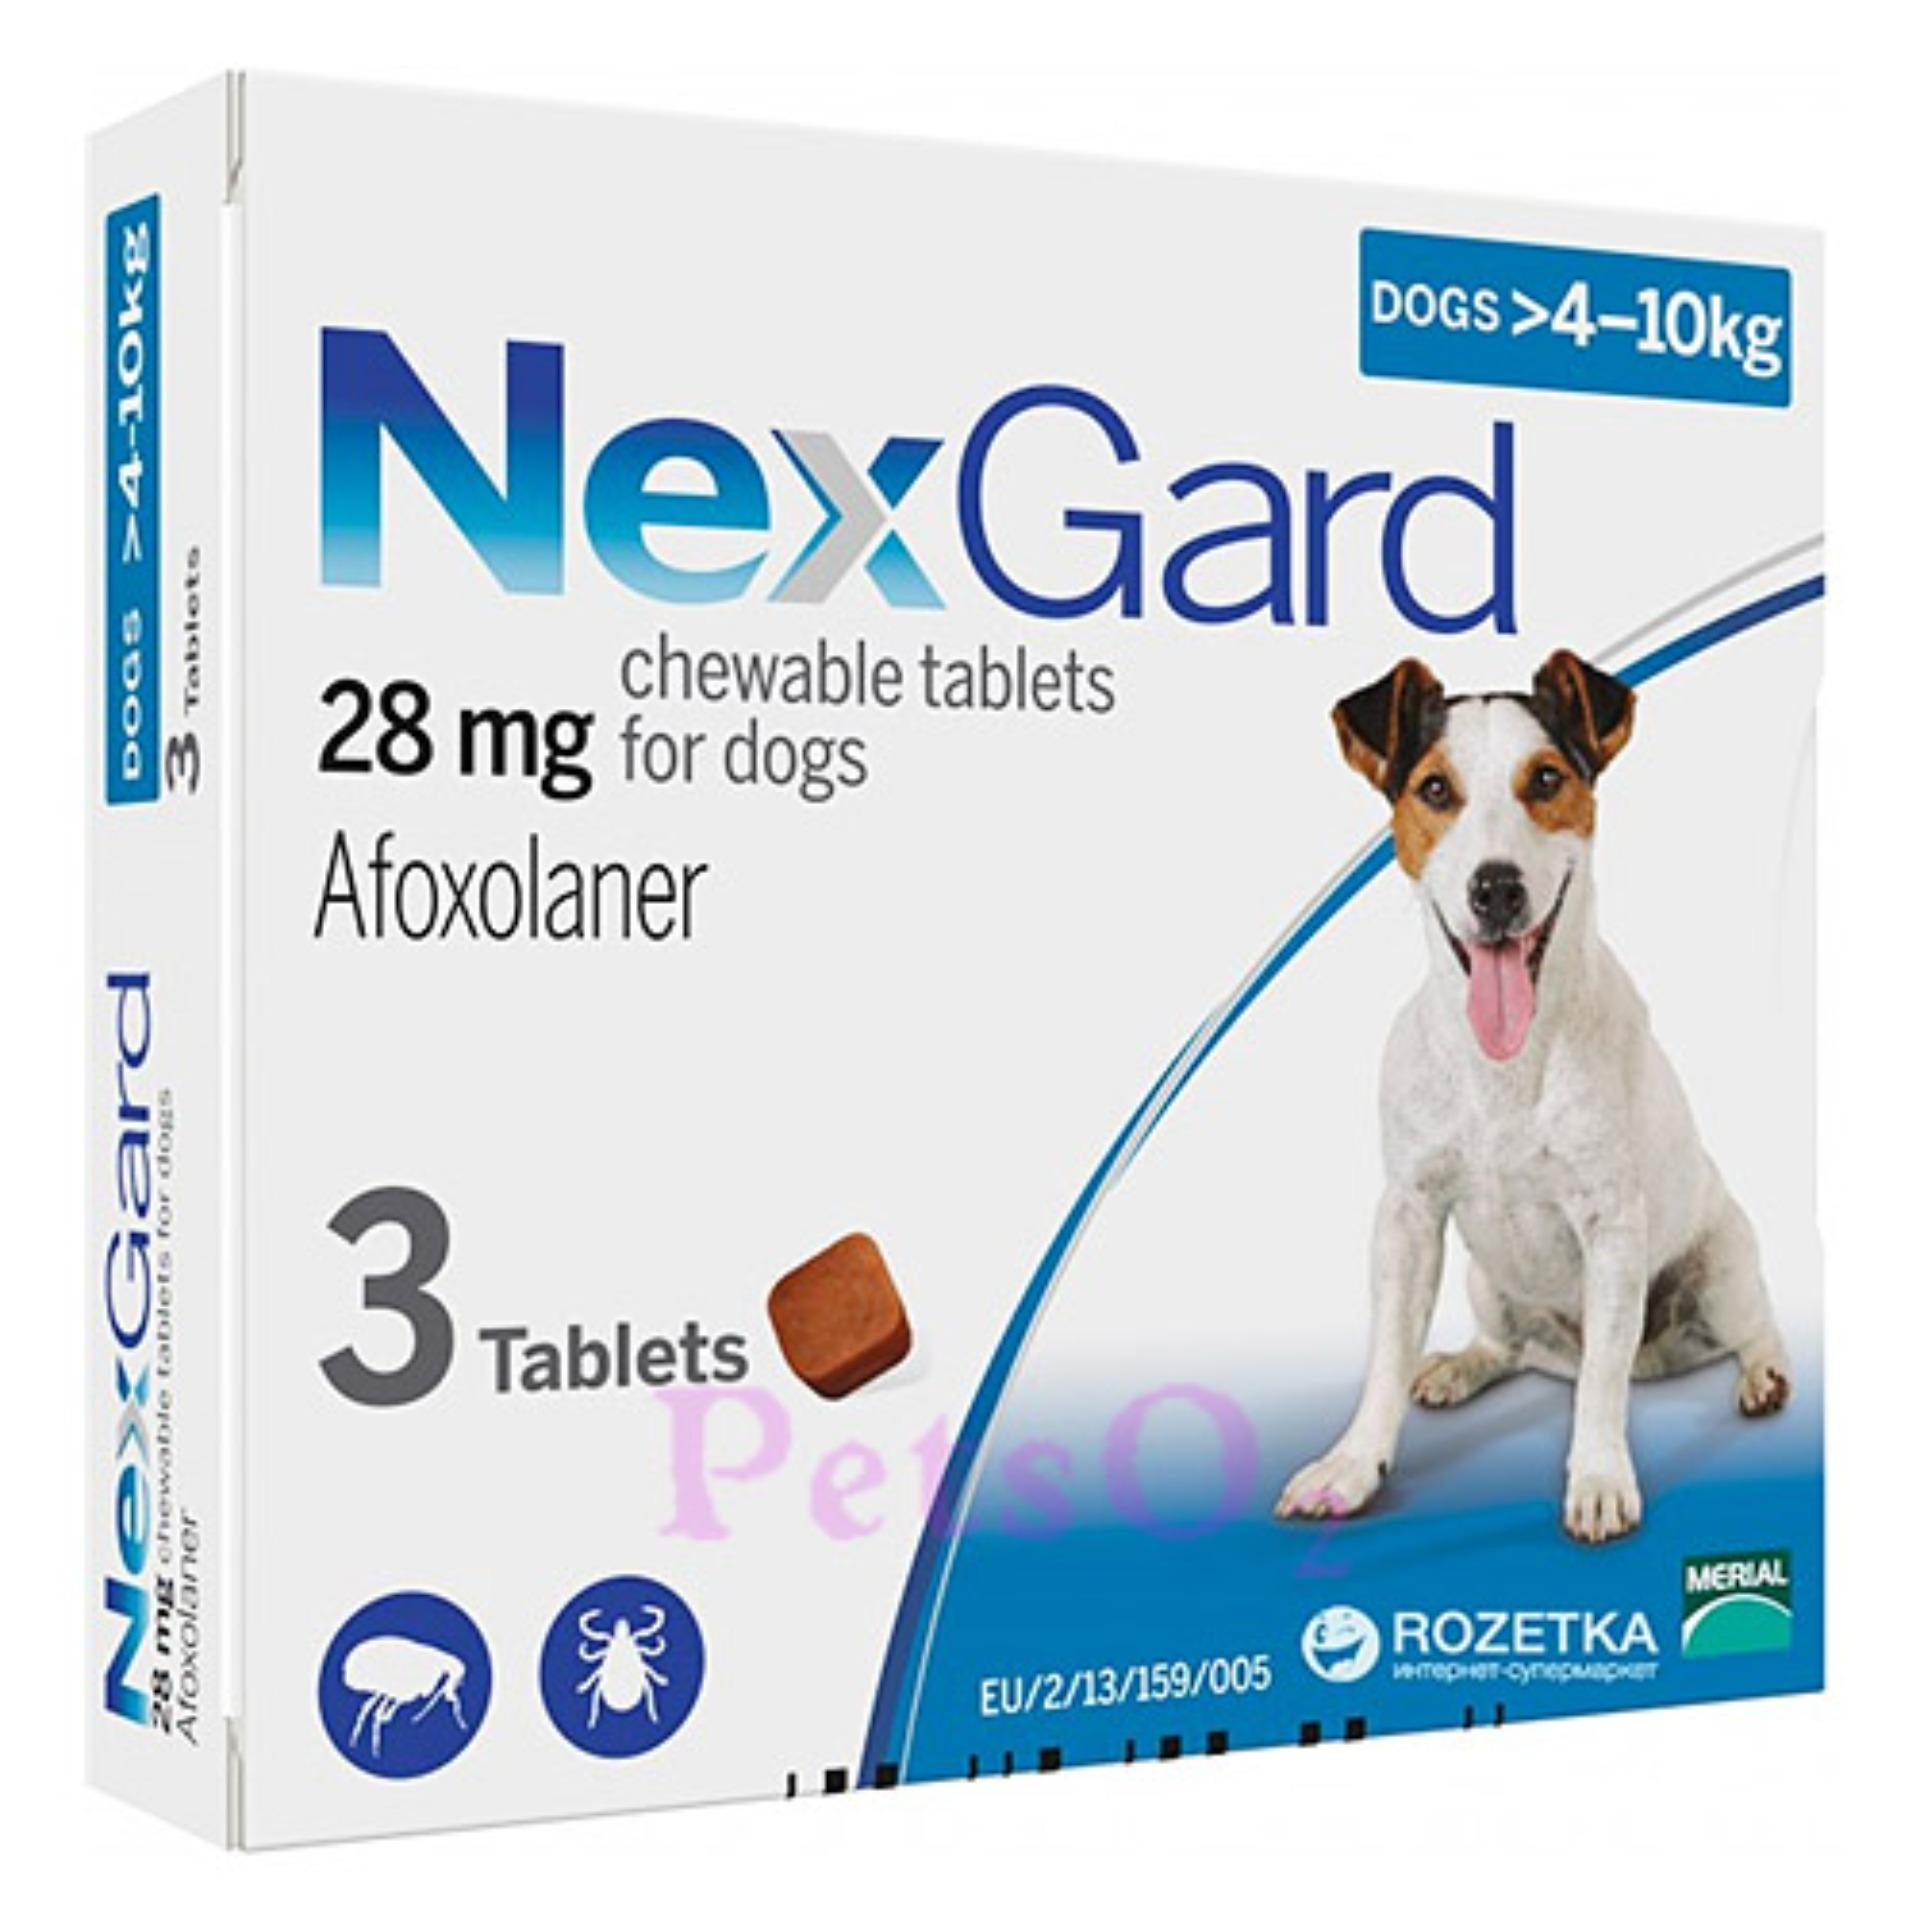 The Cheapest Nexgard Flea Tick Chews Small Dogs 4 10Kg 3 Tablets Online